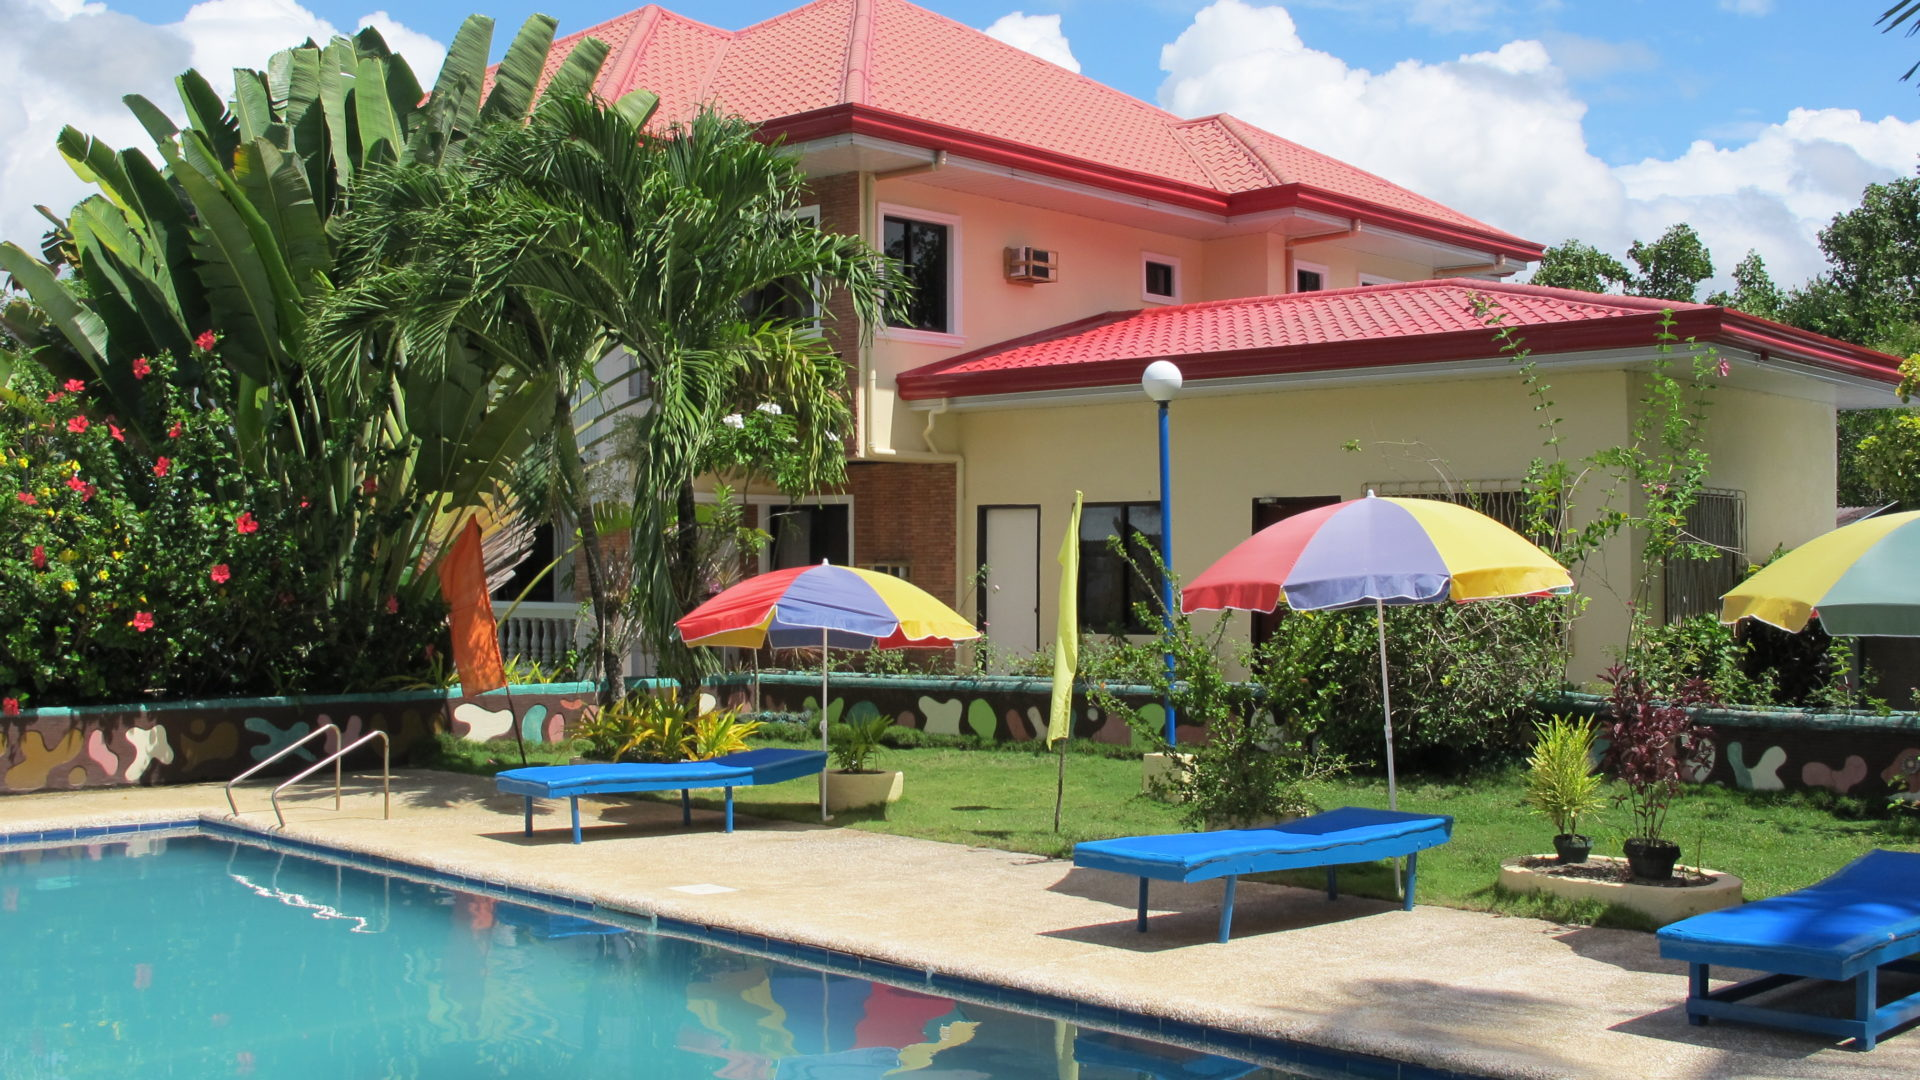 Welcome to the Looc Garden Beach Resort